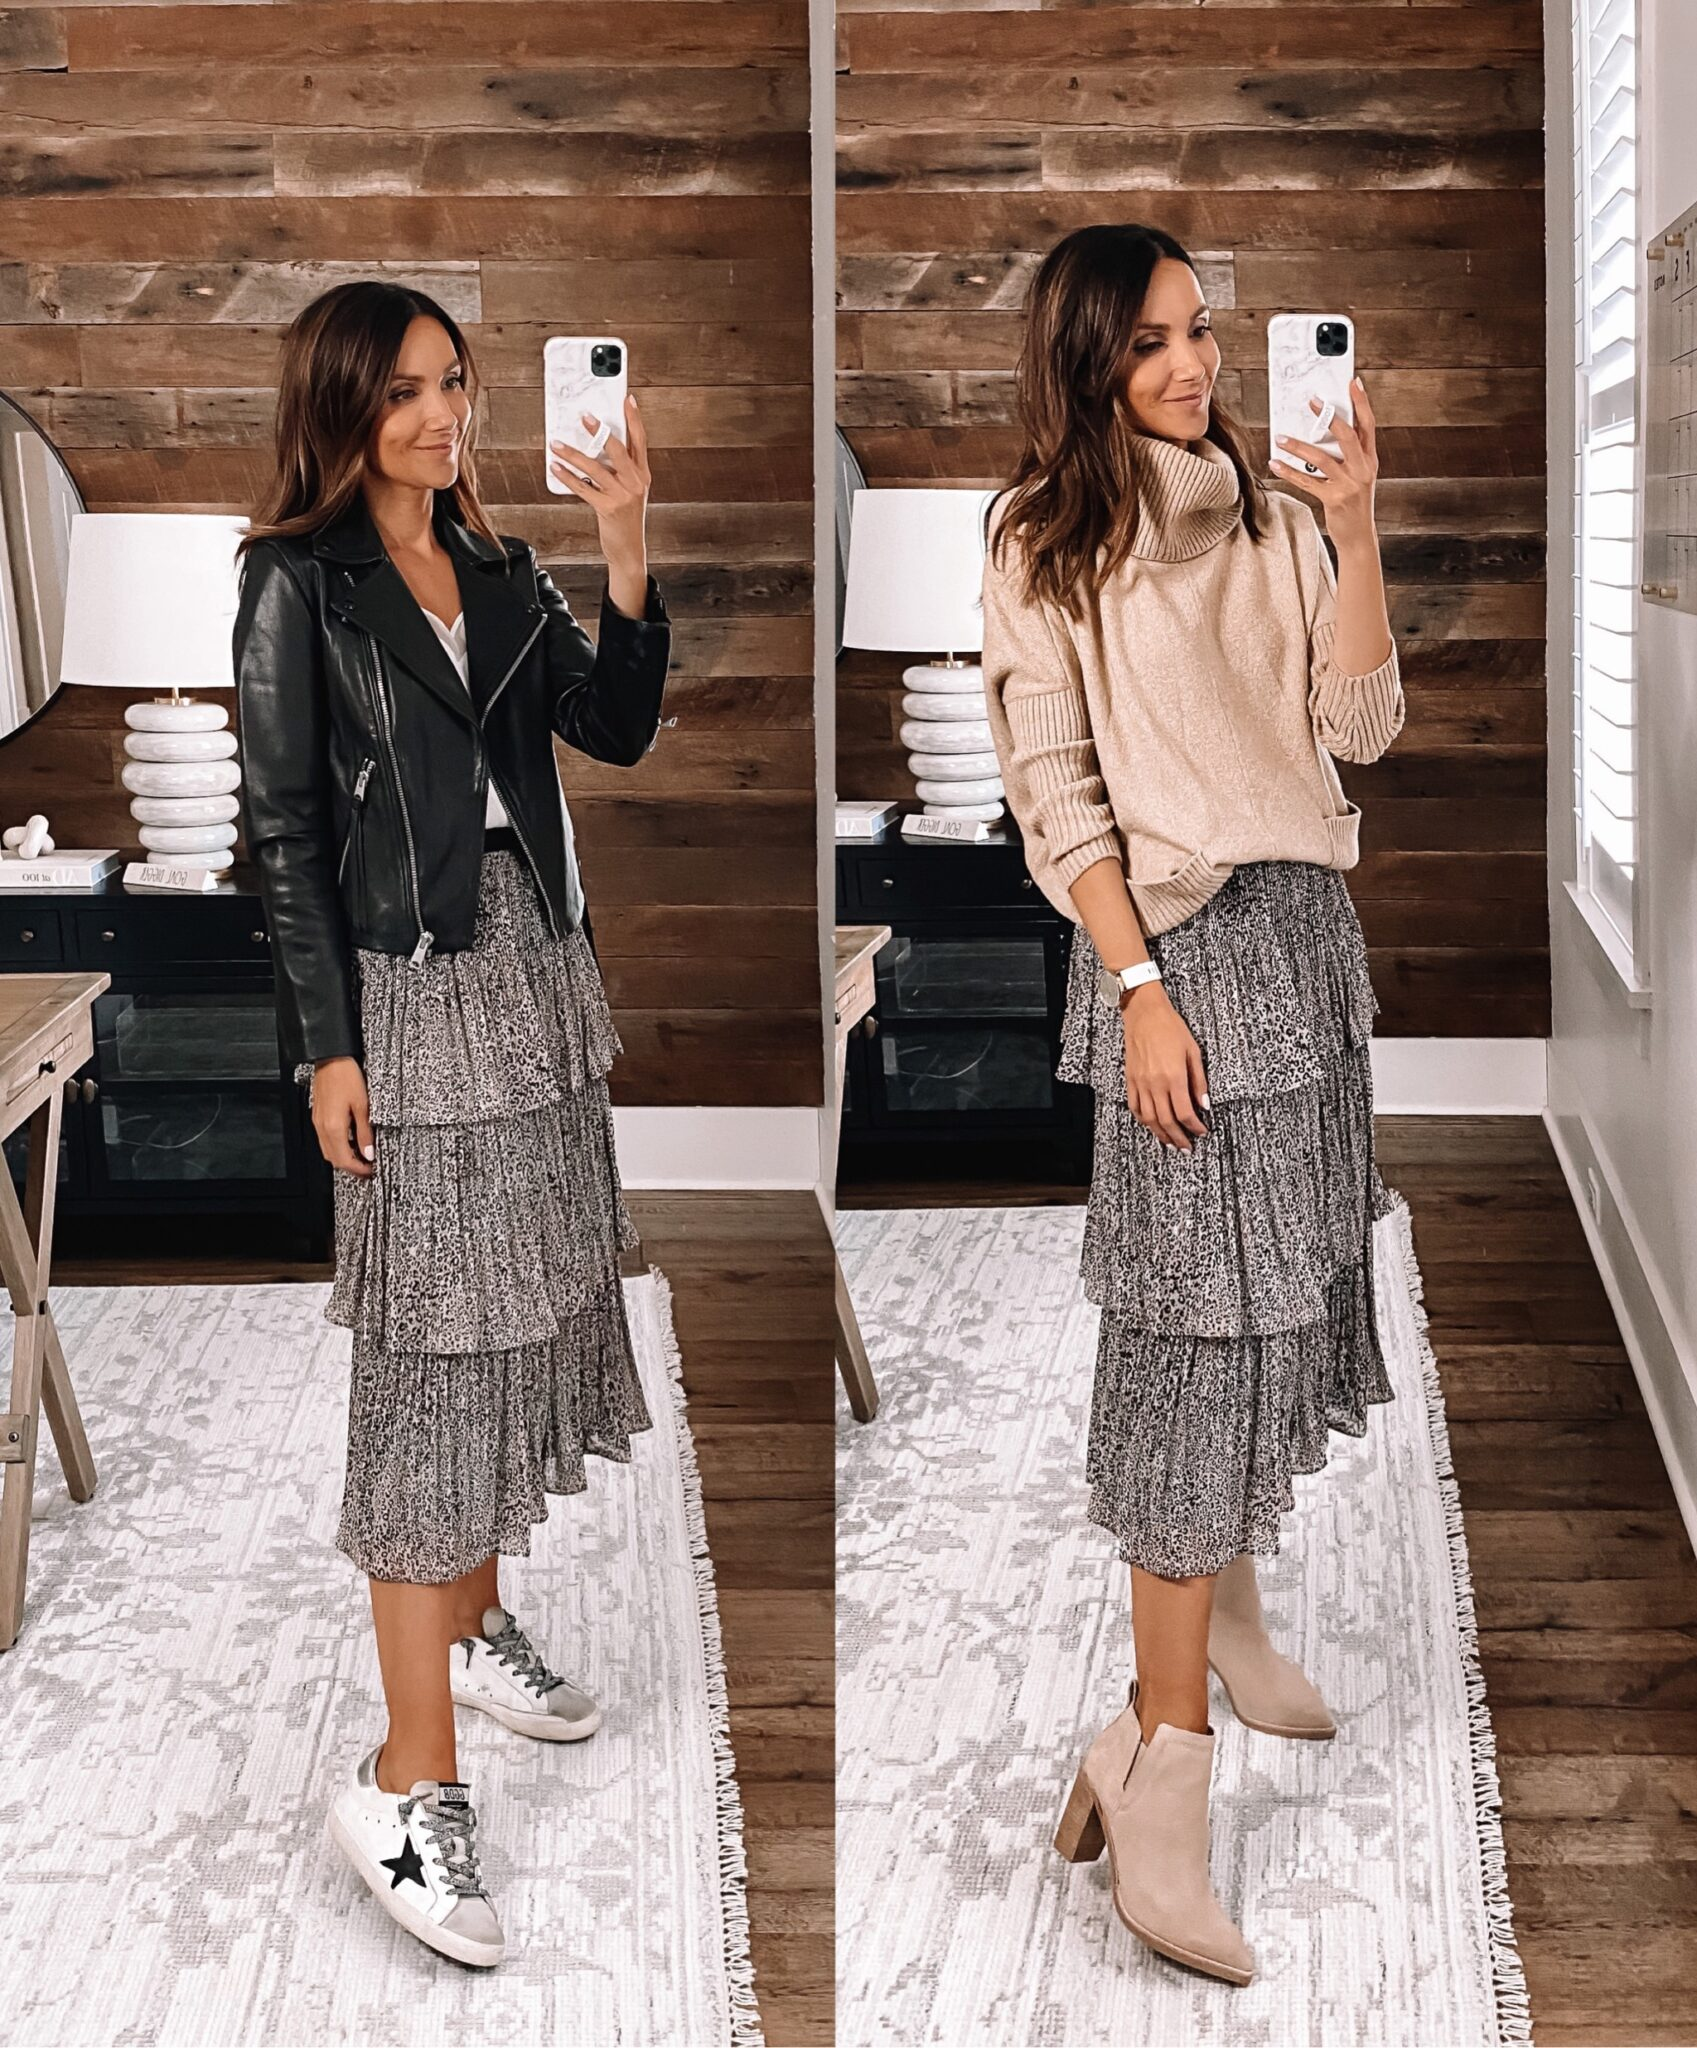 Floral tiered skirt, fall outfit, fall fashion